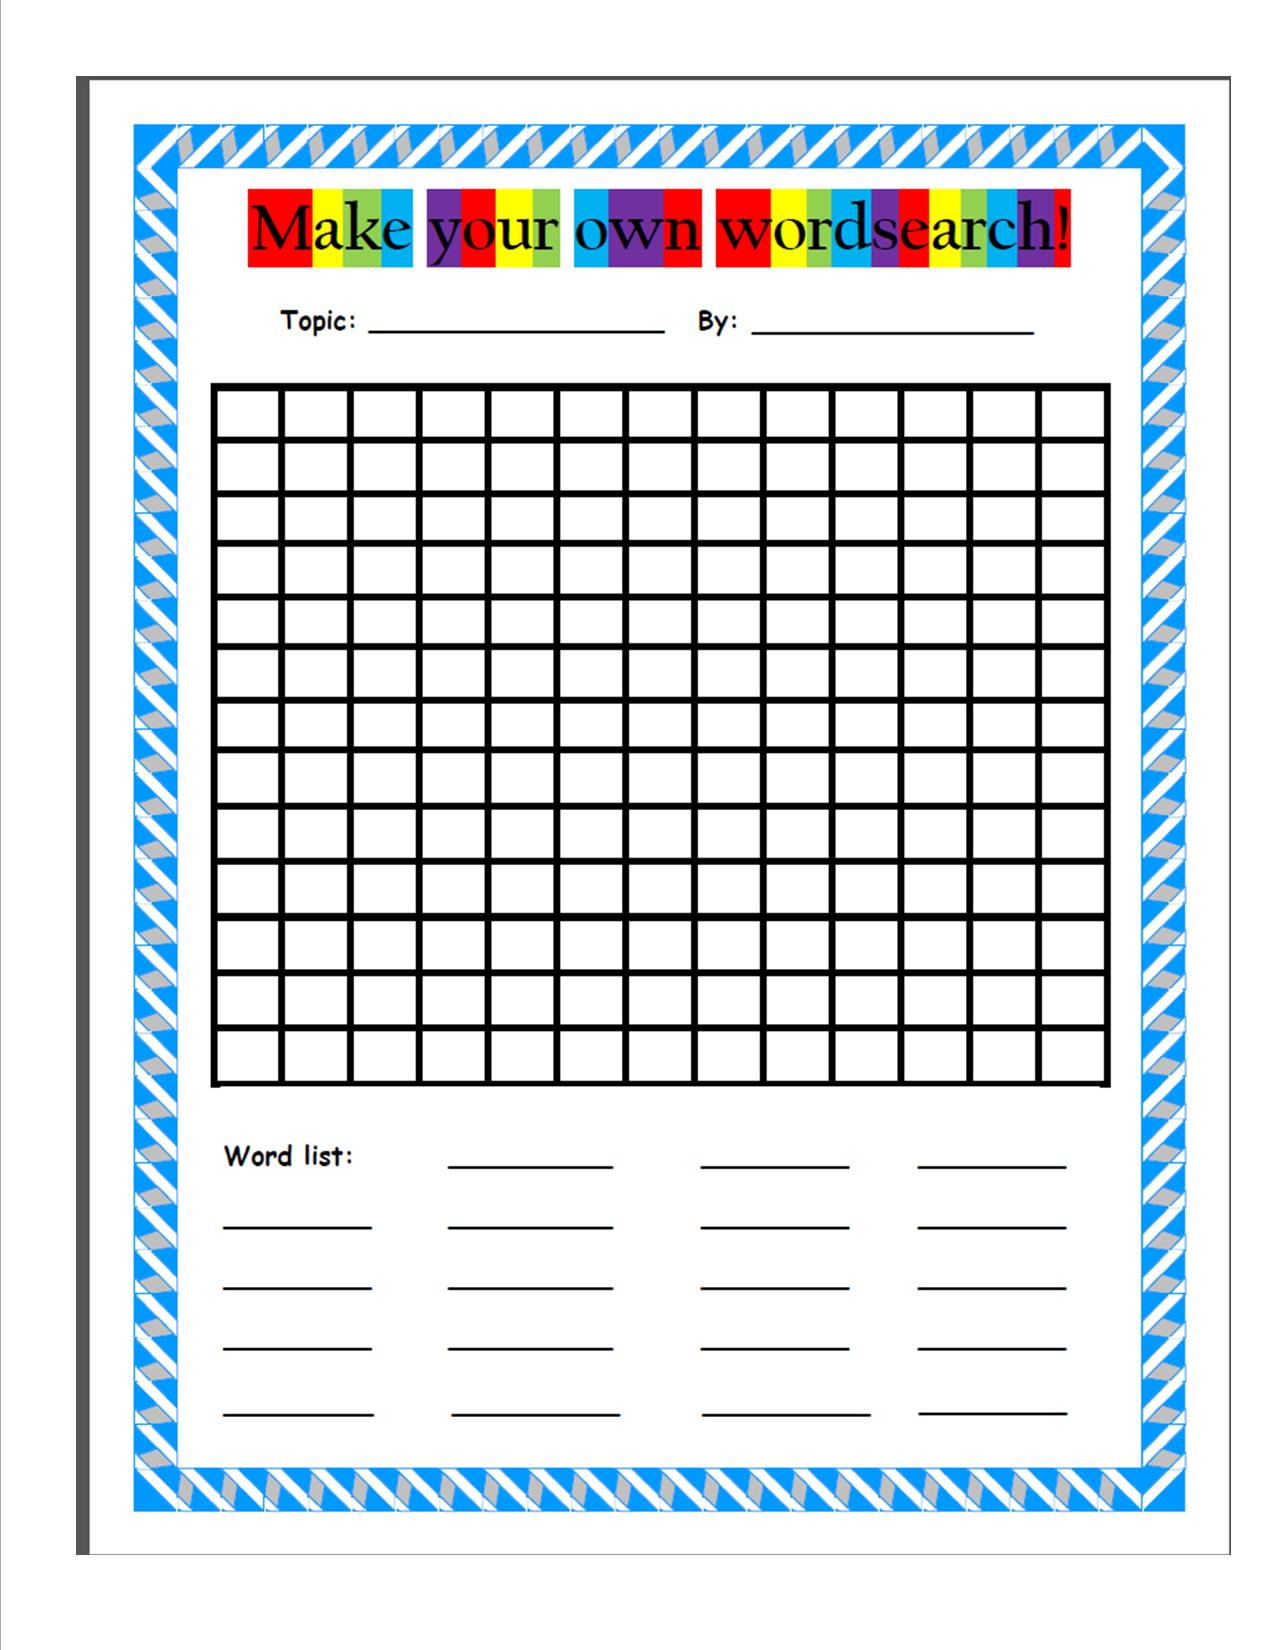 Make your own wordsearch - kid friendly